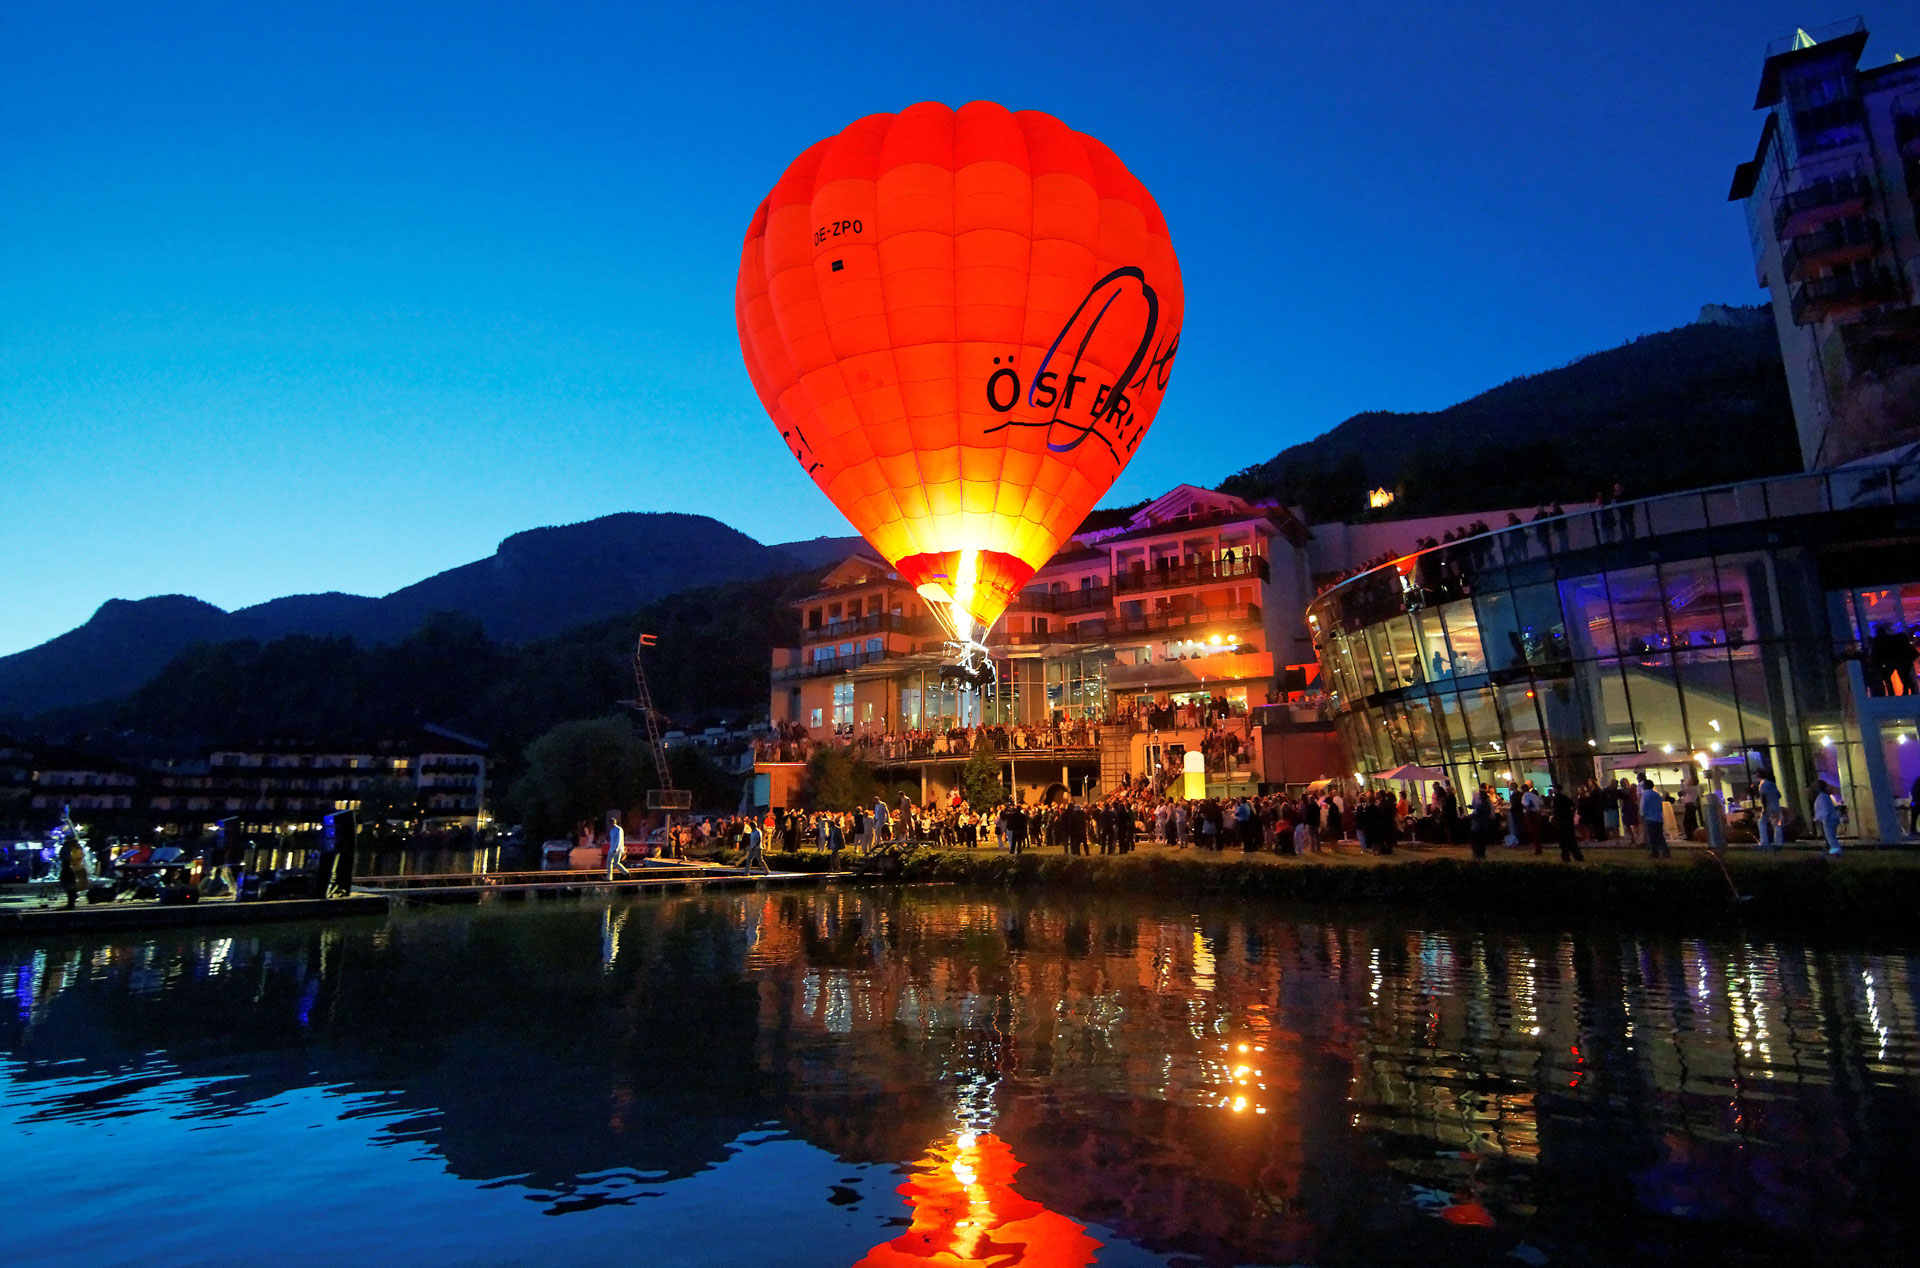 The Boogieballoon at Scalaria